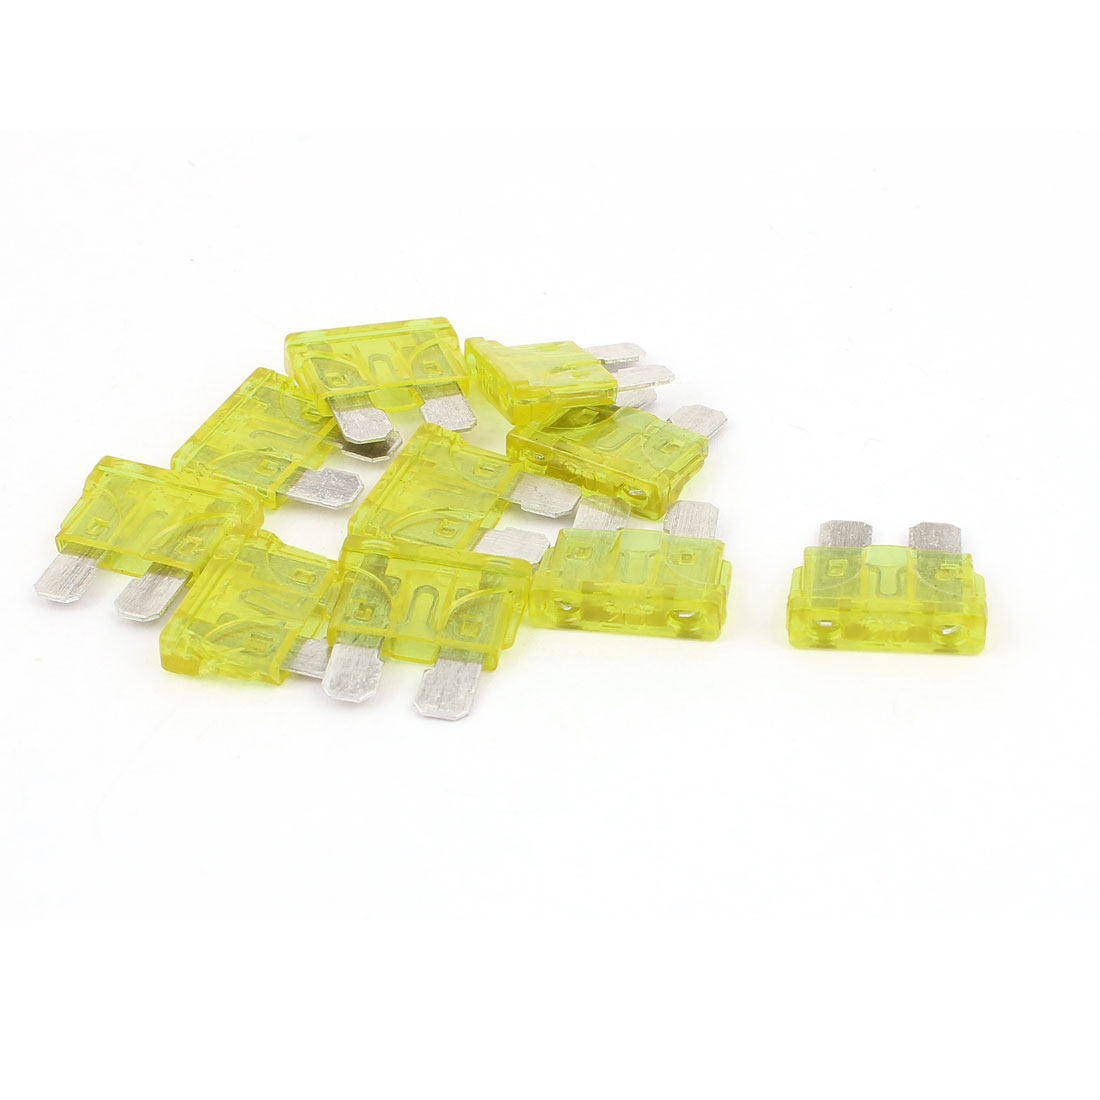 10pcs Yellow 20A Plastic Casing Blade Fuse for Auto Car Truck Motorcycle SUV